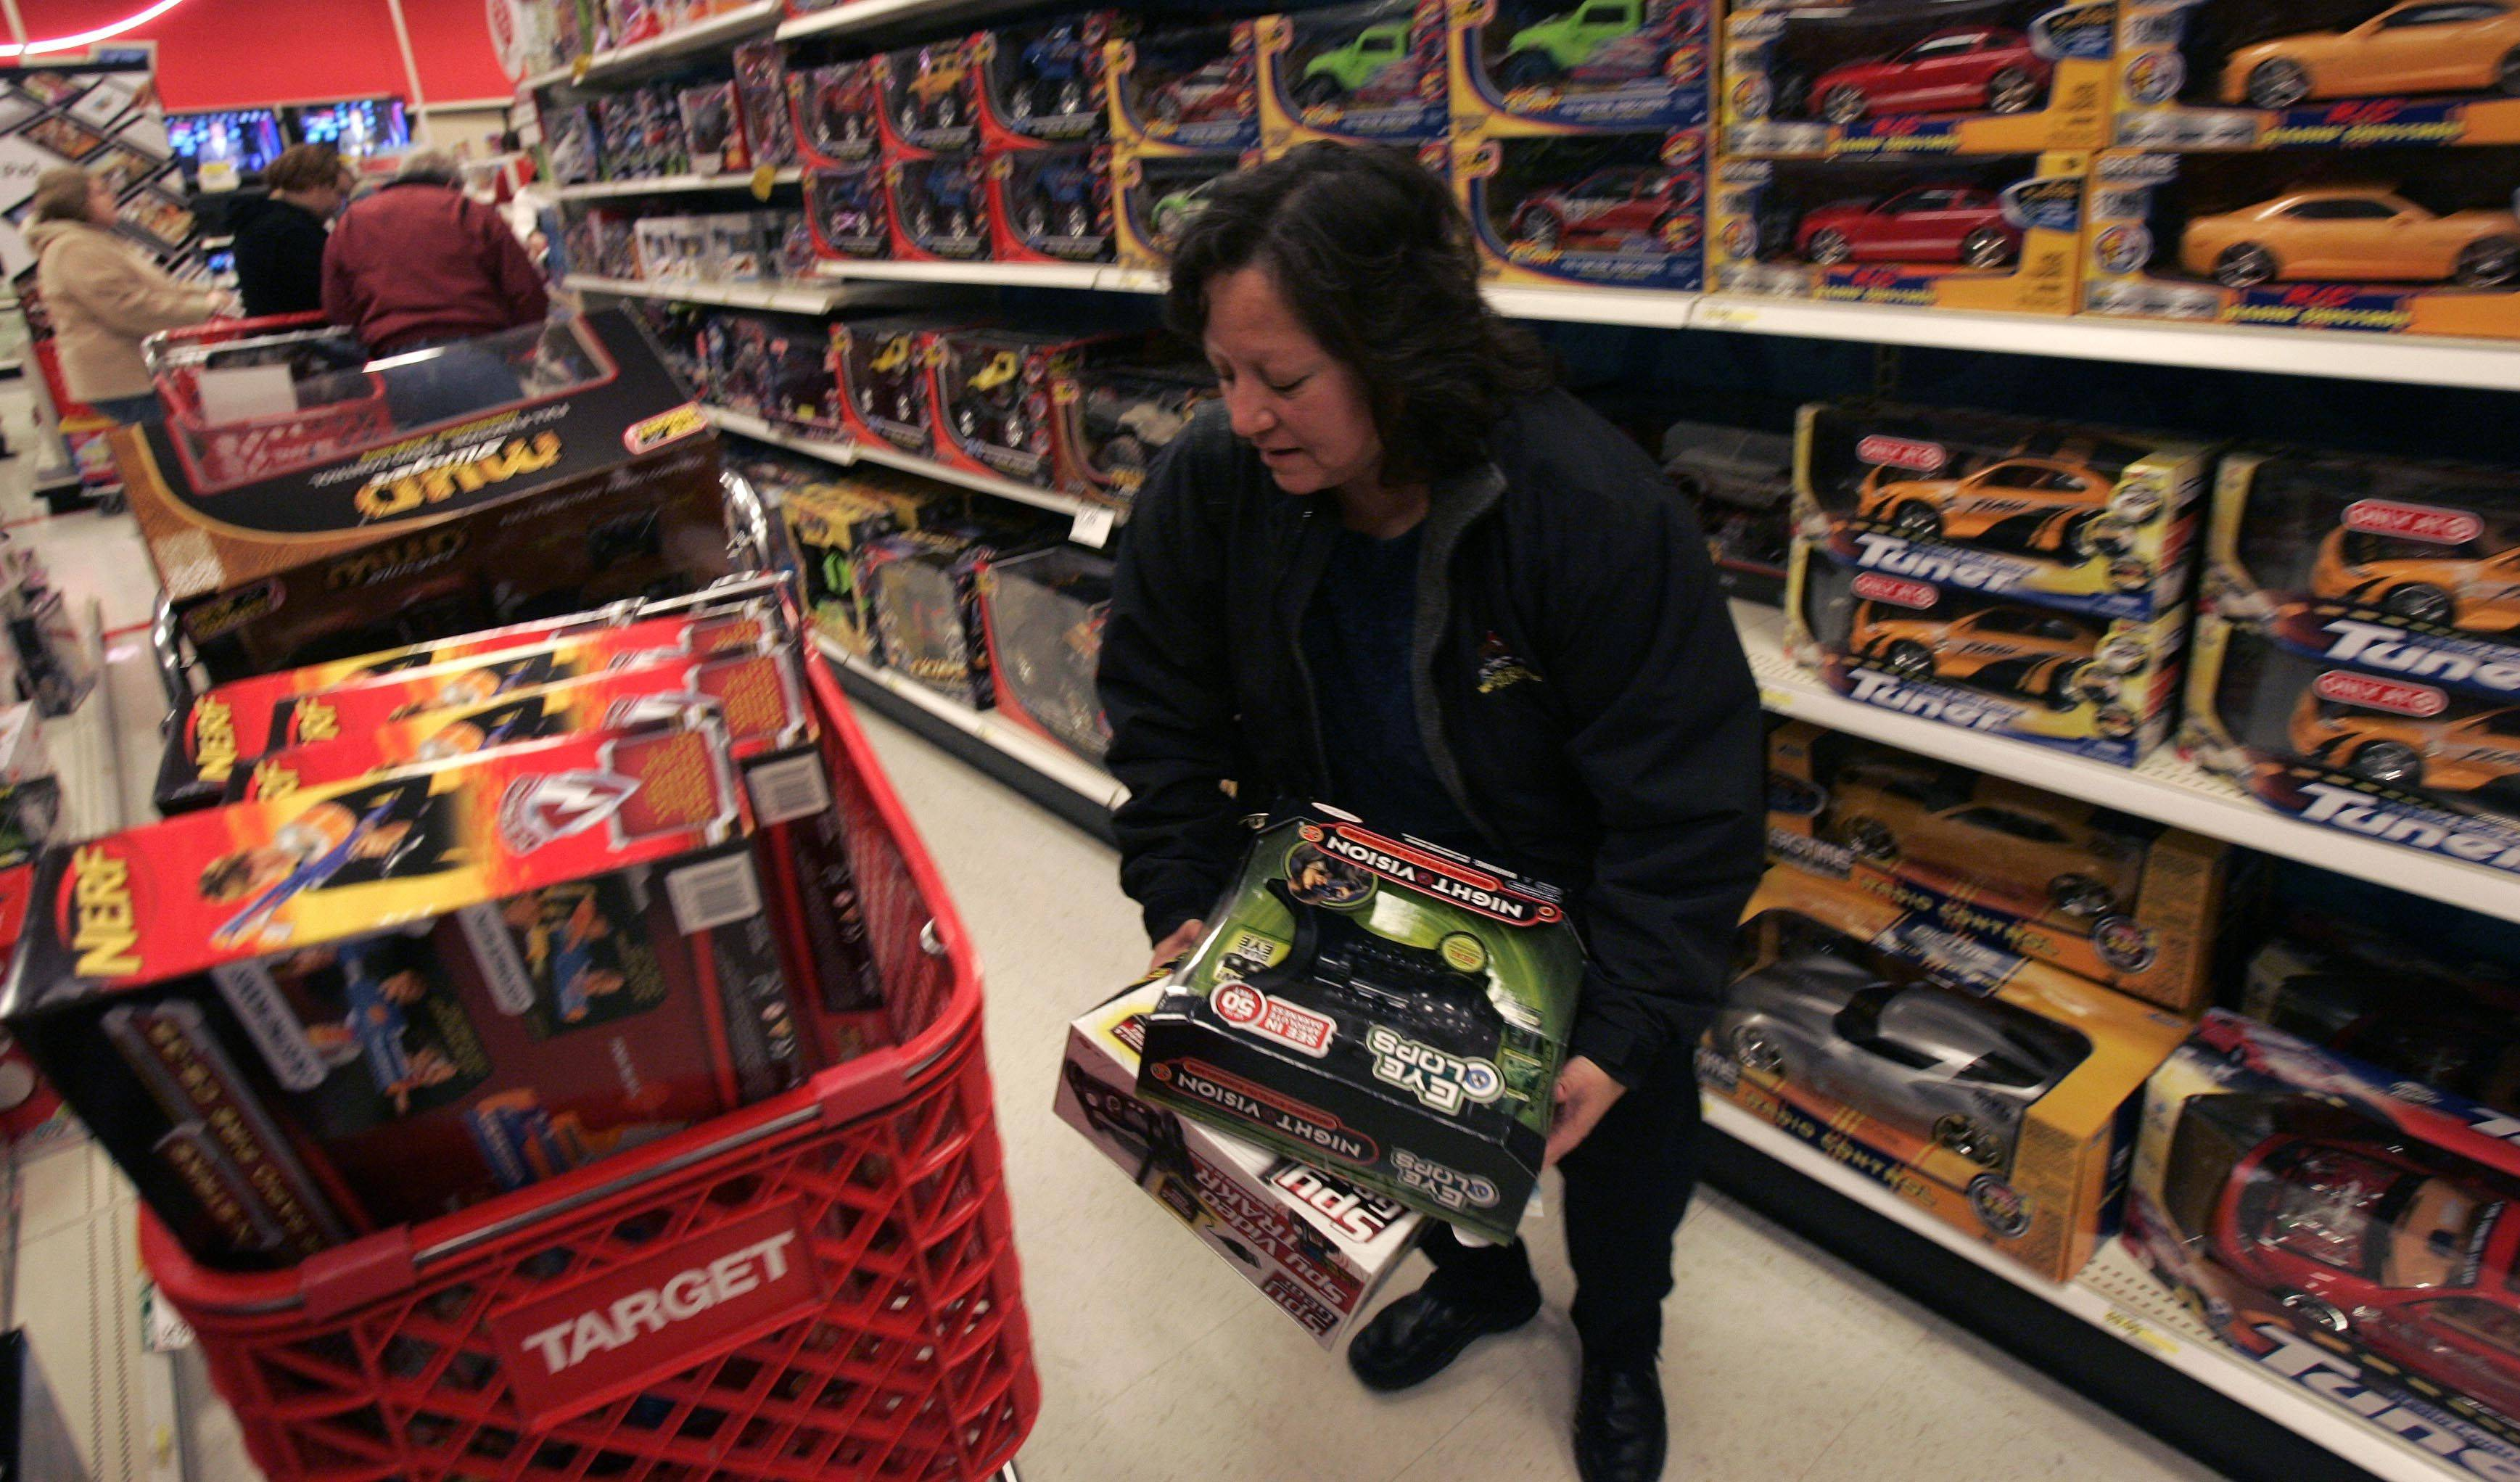 Images of Black Friday shopping 2010